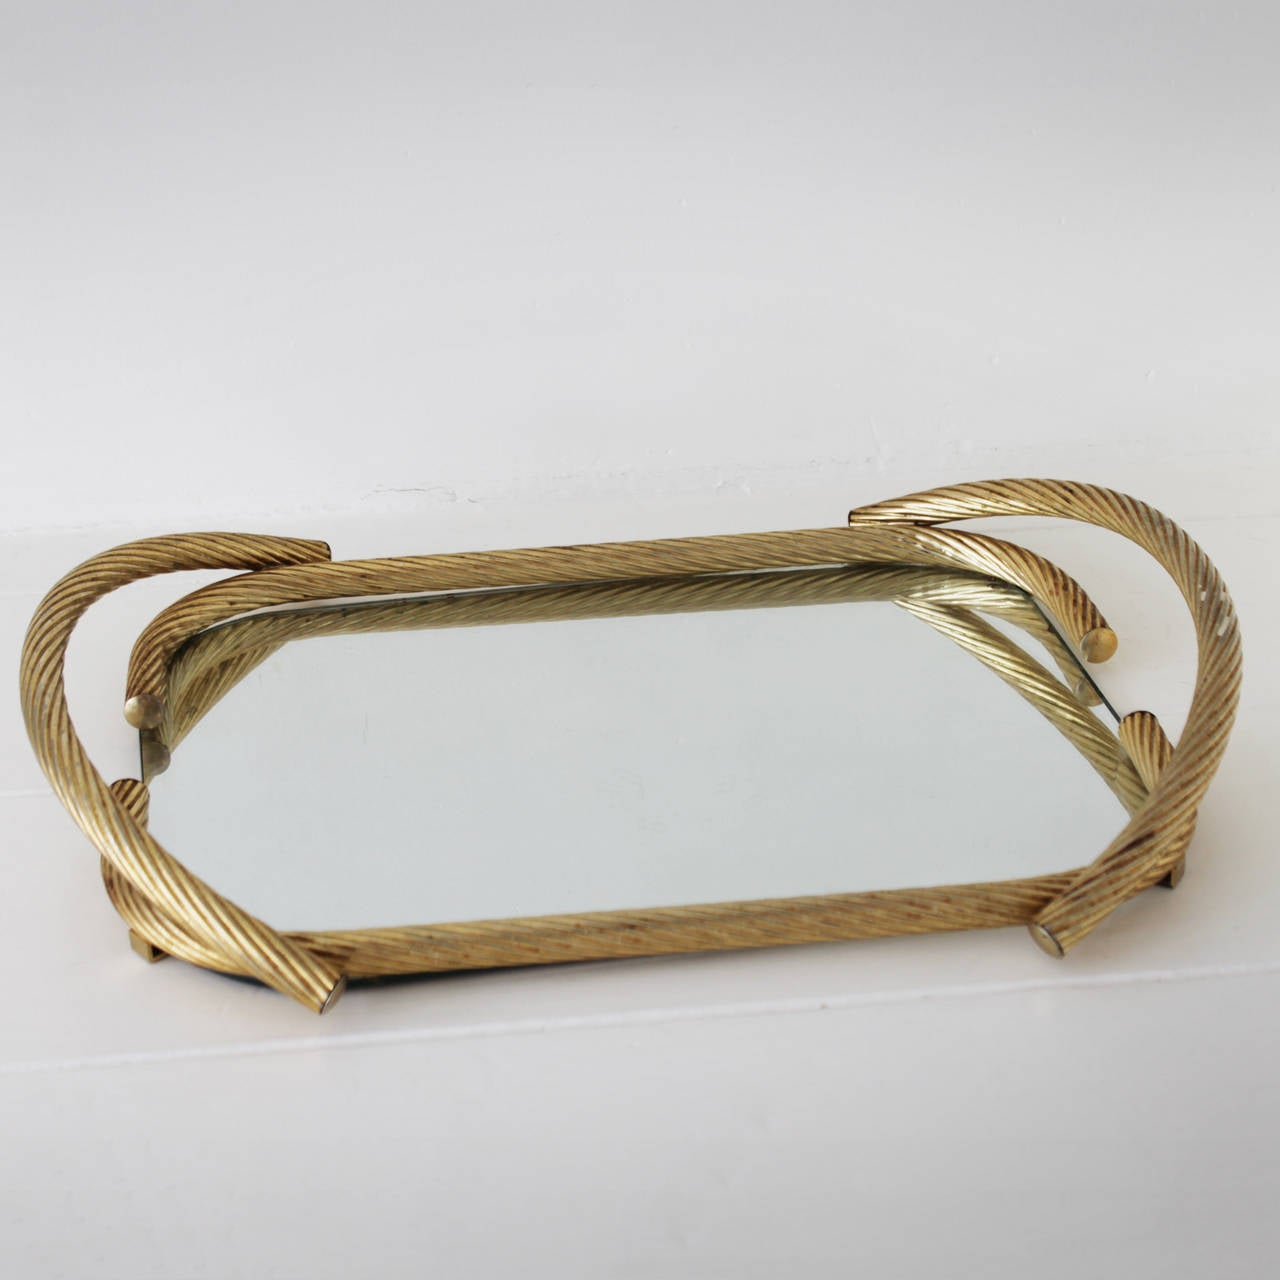 Rope mirror serving tray from France. Gilded metal. Measurements: height 3.5 in. (9 cm), length 21.6 in. (55 cm), width 15.7 inches (40 cm).